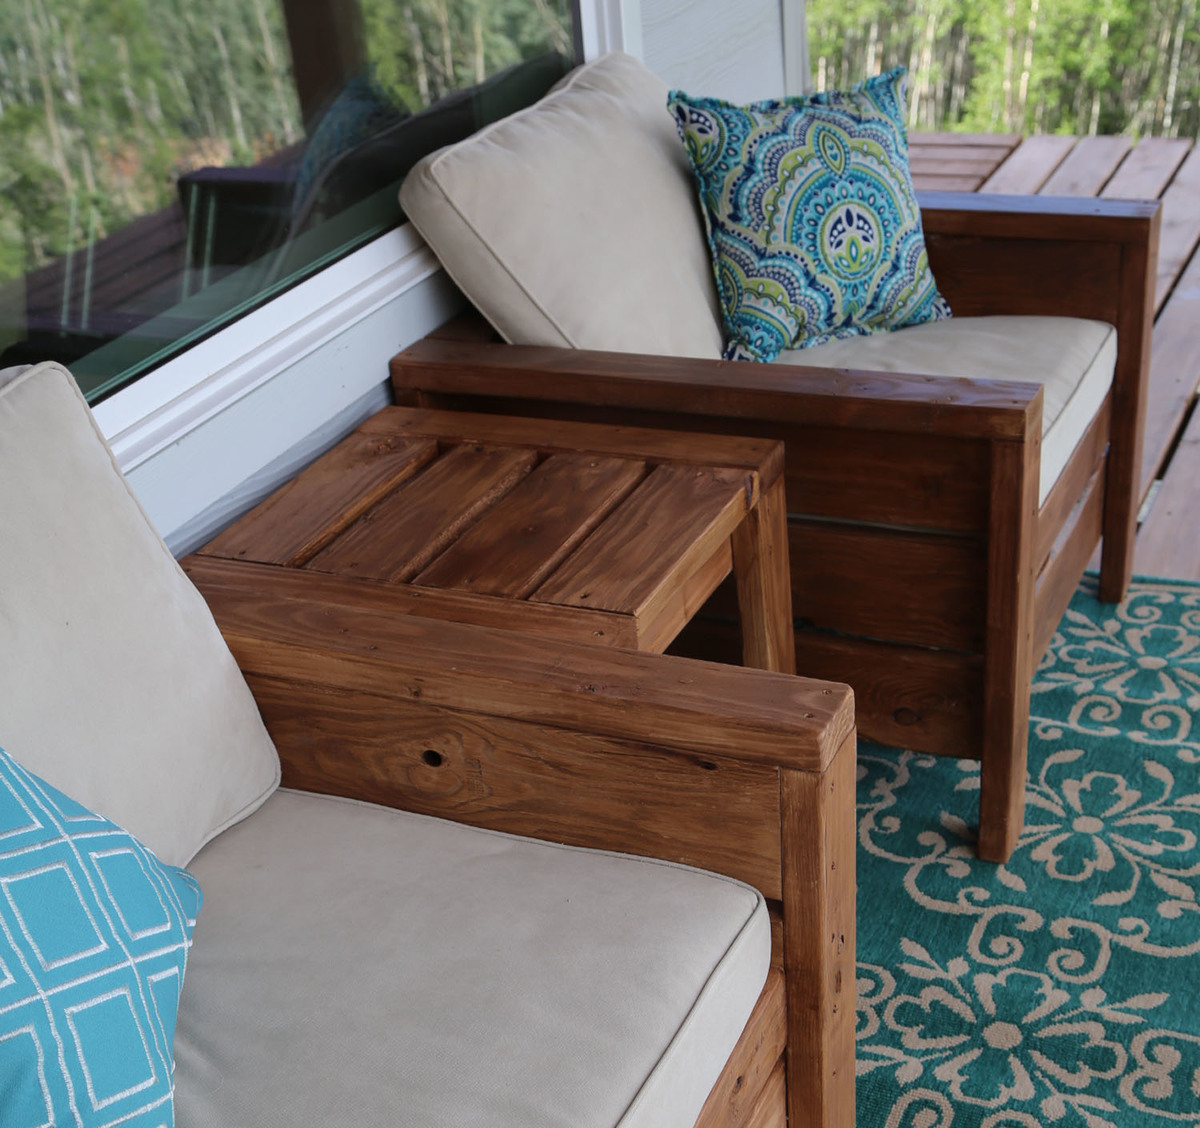 Easy To Build Sy Modern Outdoor Chairs For Deck Or Patio Free Plans By Ana White